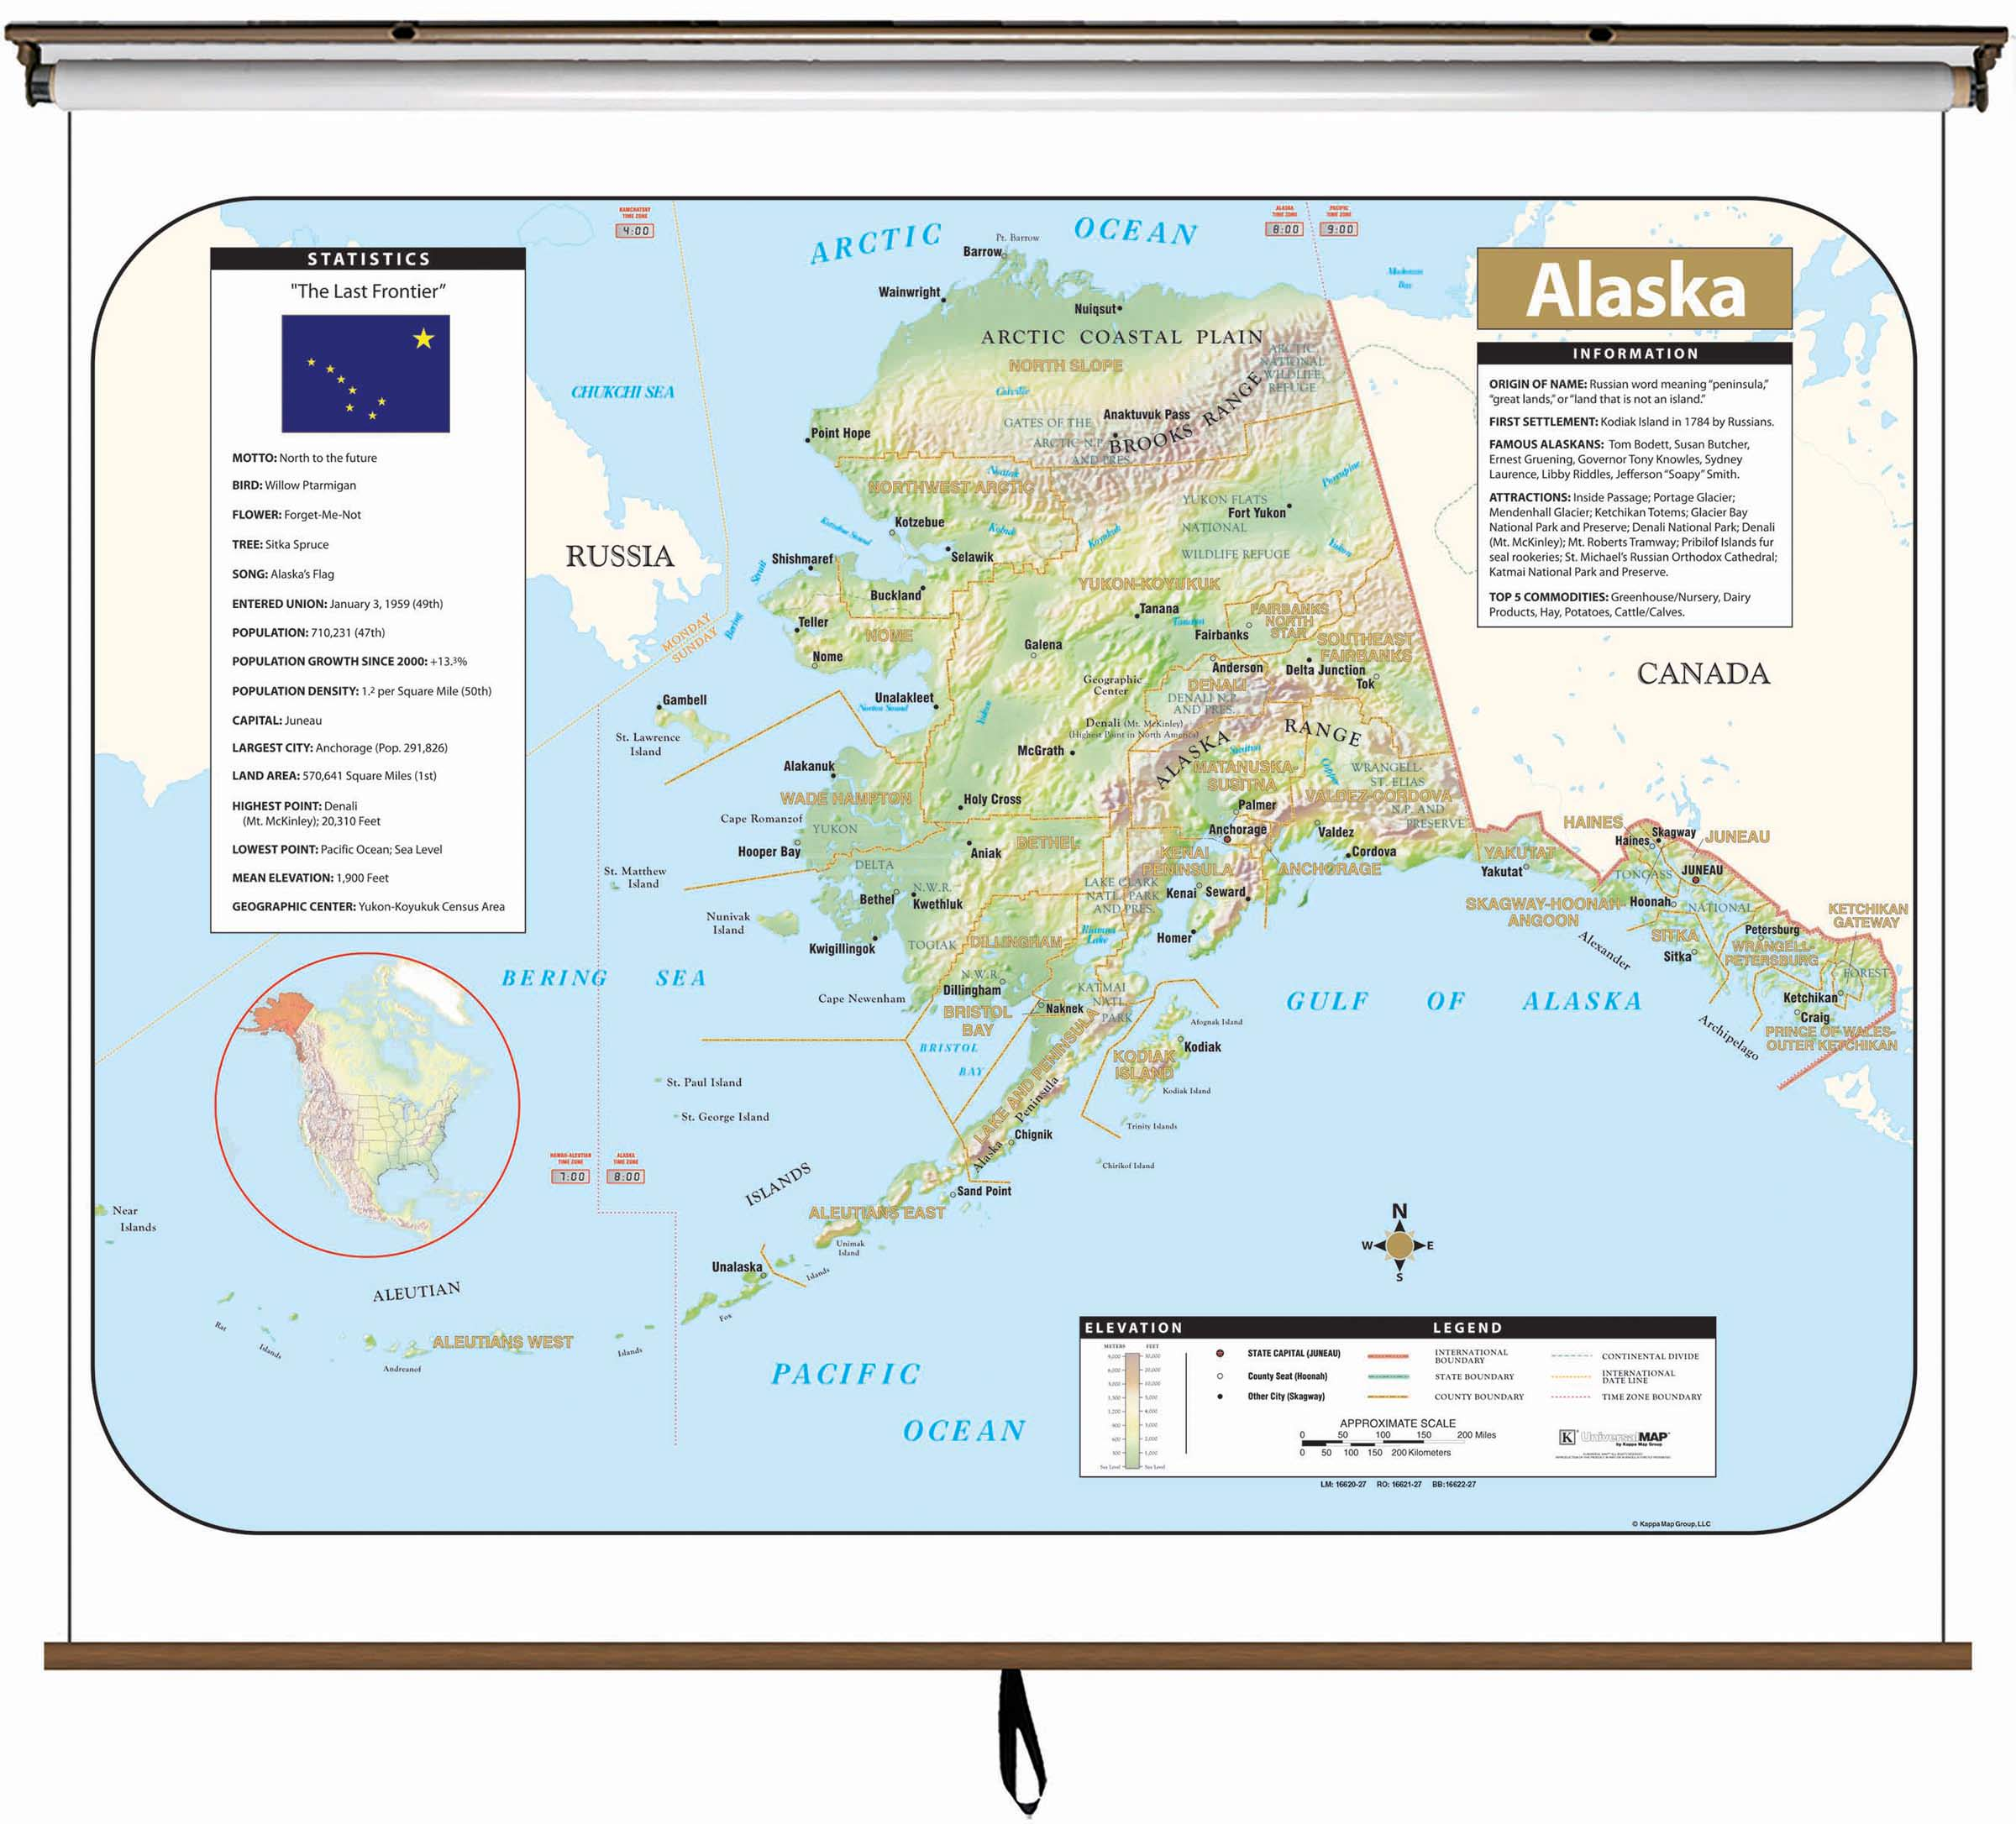 Alaska Large Scale Shaded Relief Wall Map On Roller With Backboard - Large scale world map